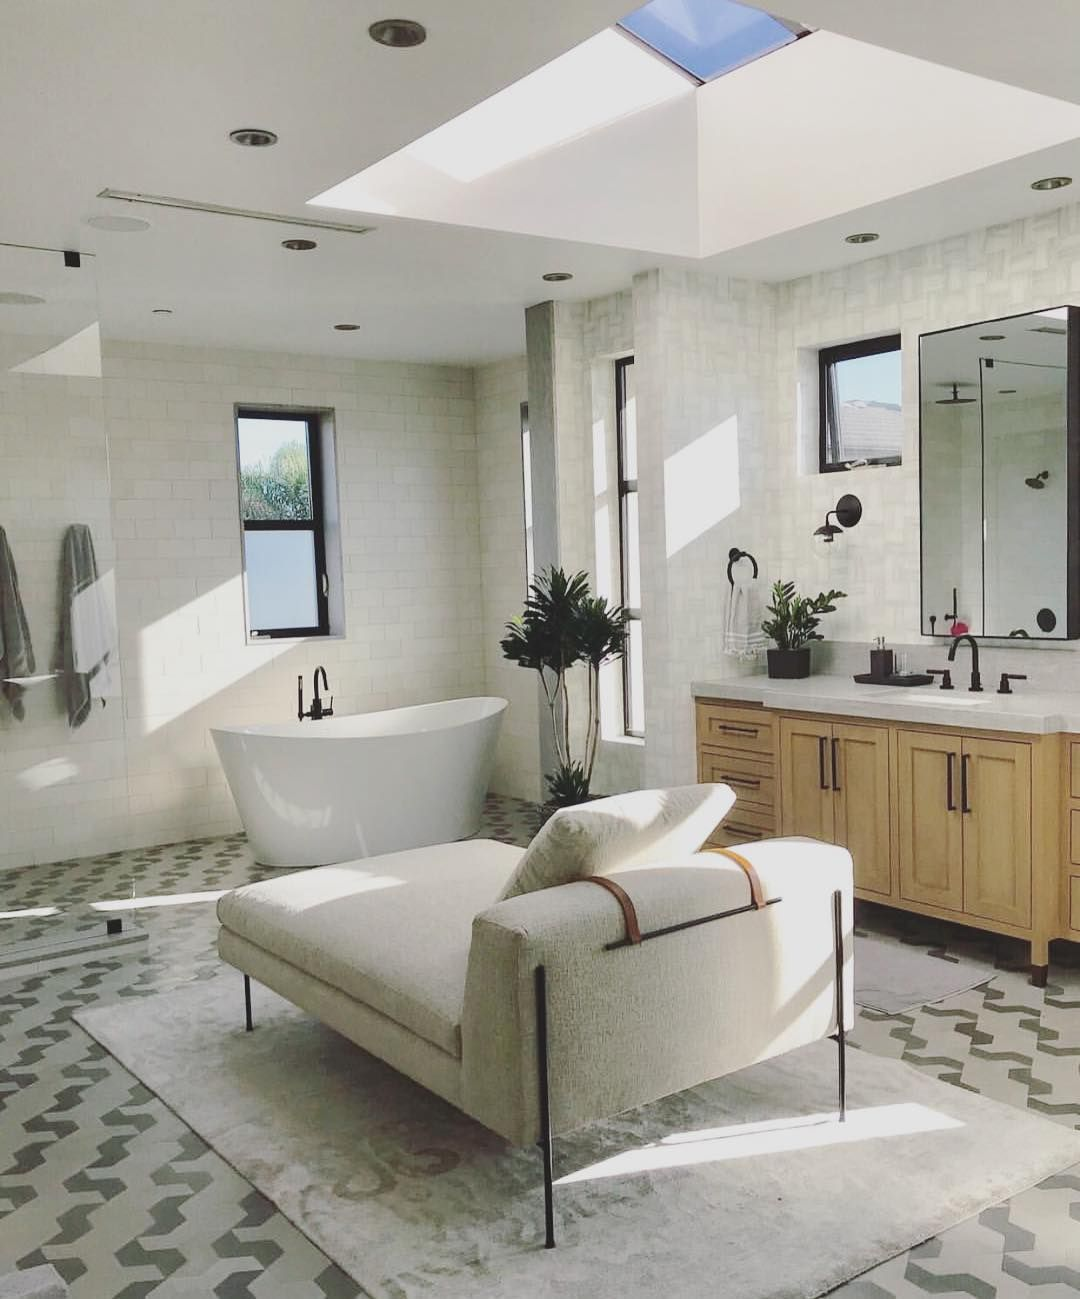 Dreamy bathroom design by @brookewagnerdesign featuring our Croft